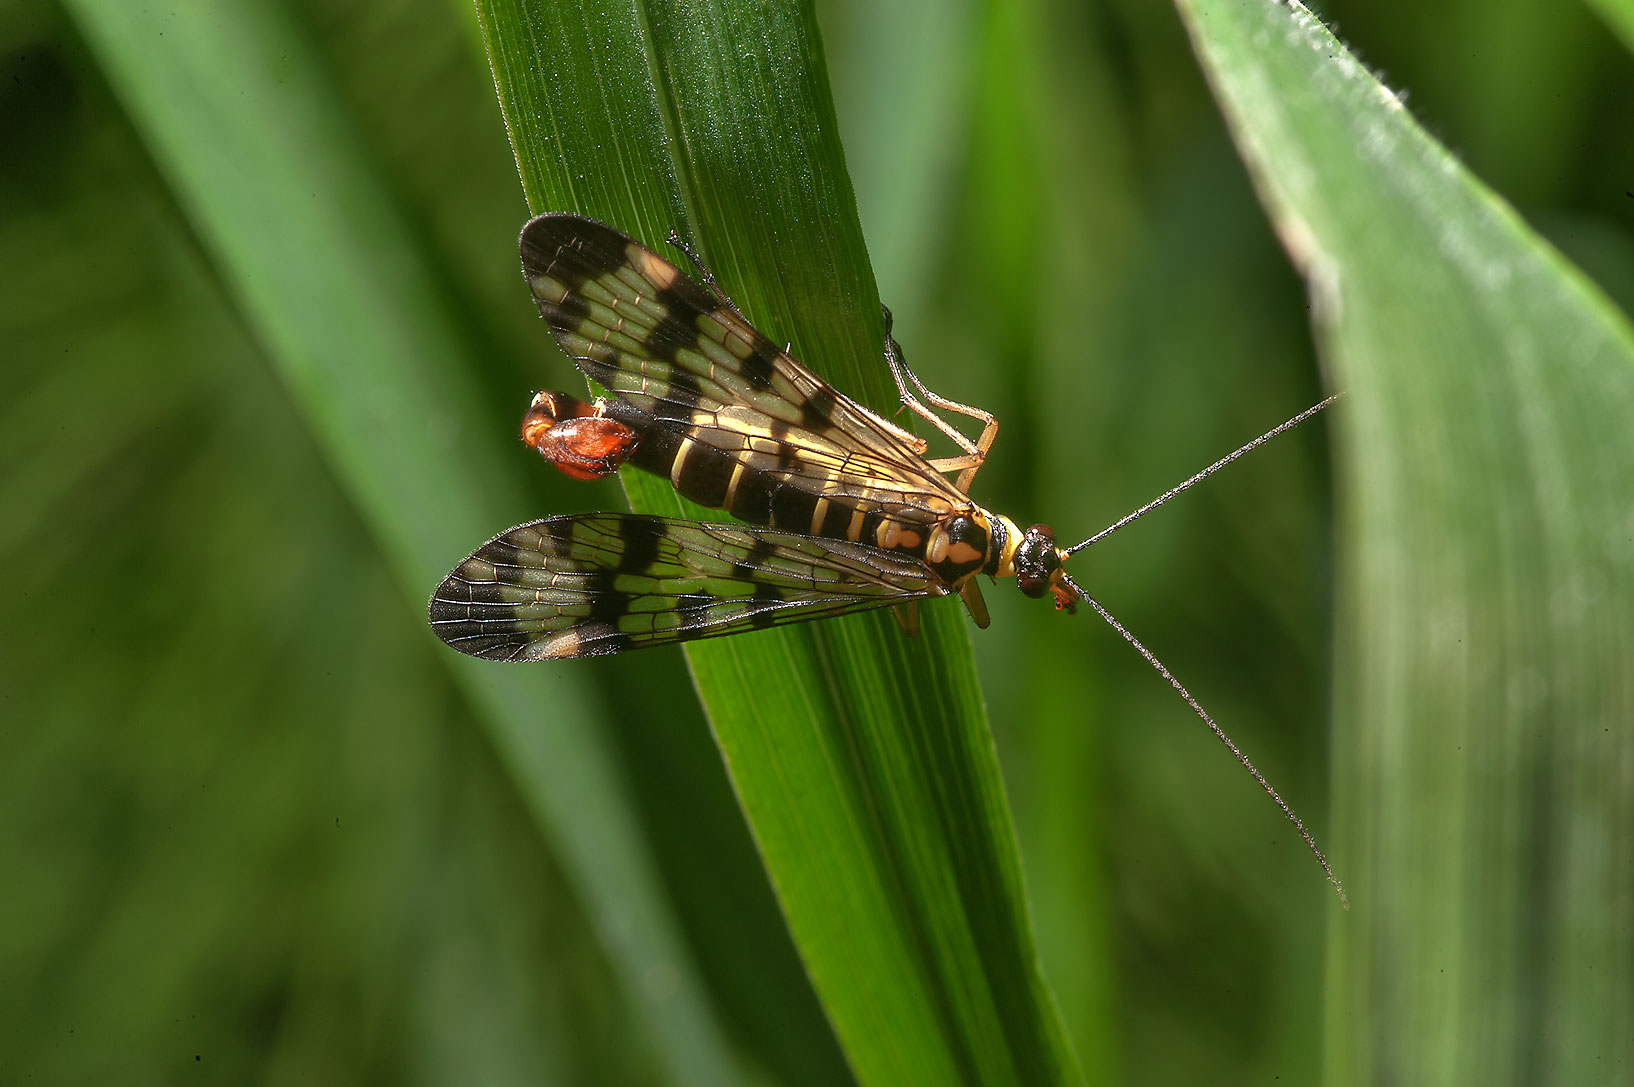 Scorpionfly in Otdelny Park in Pushkin (former...a suburb of St.Petersburg. Russia